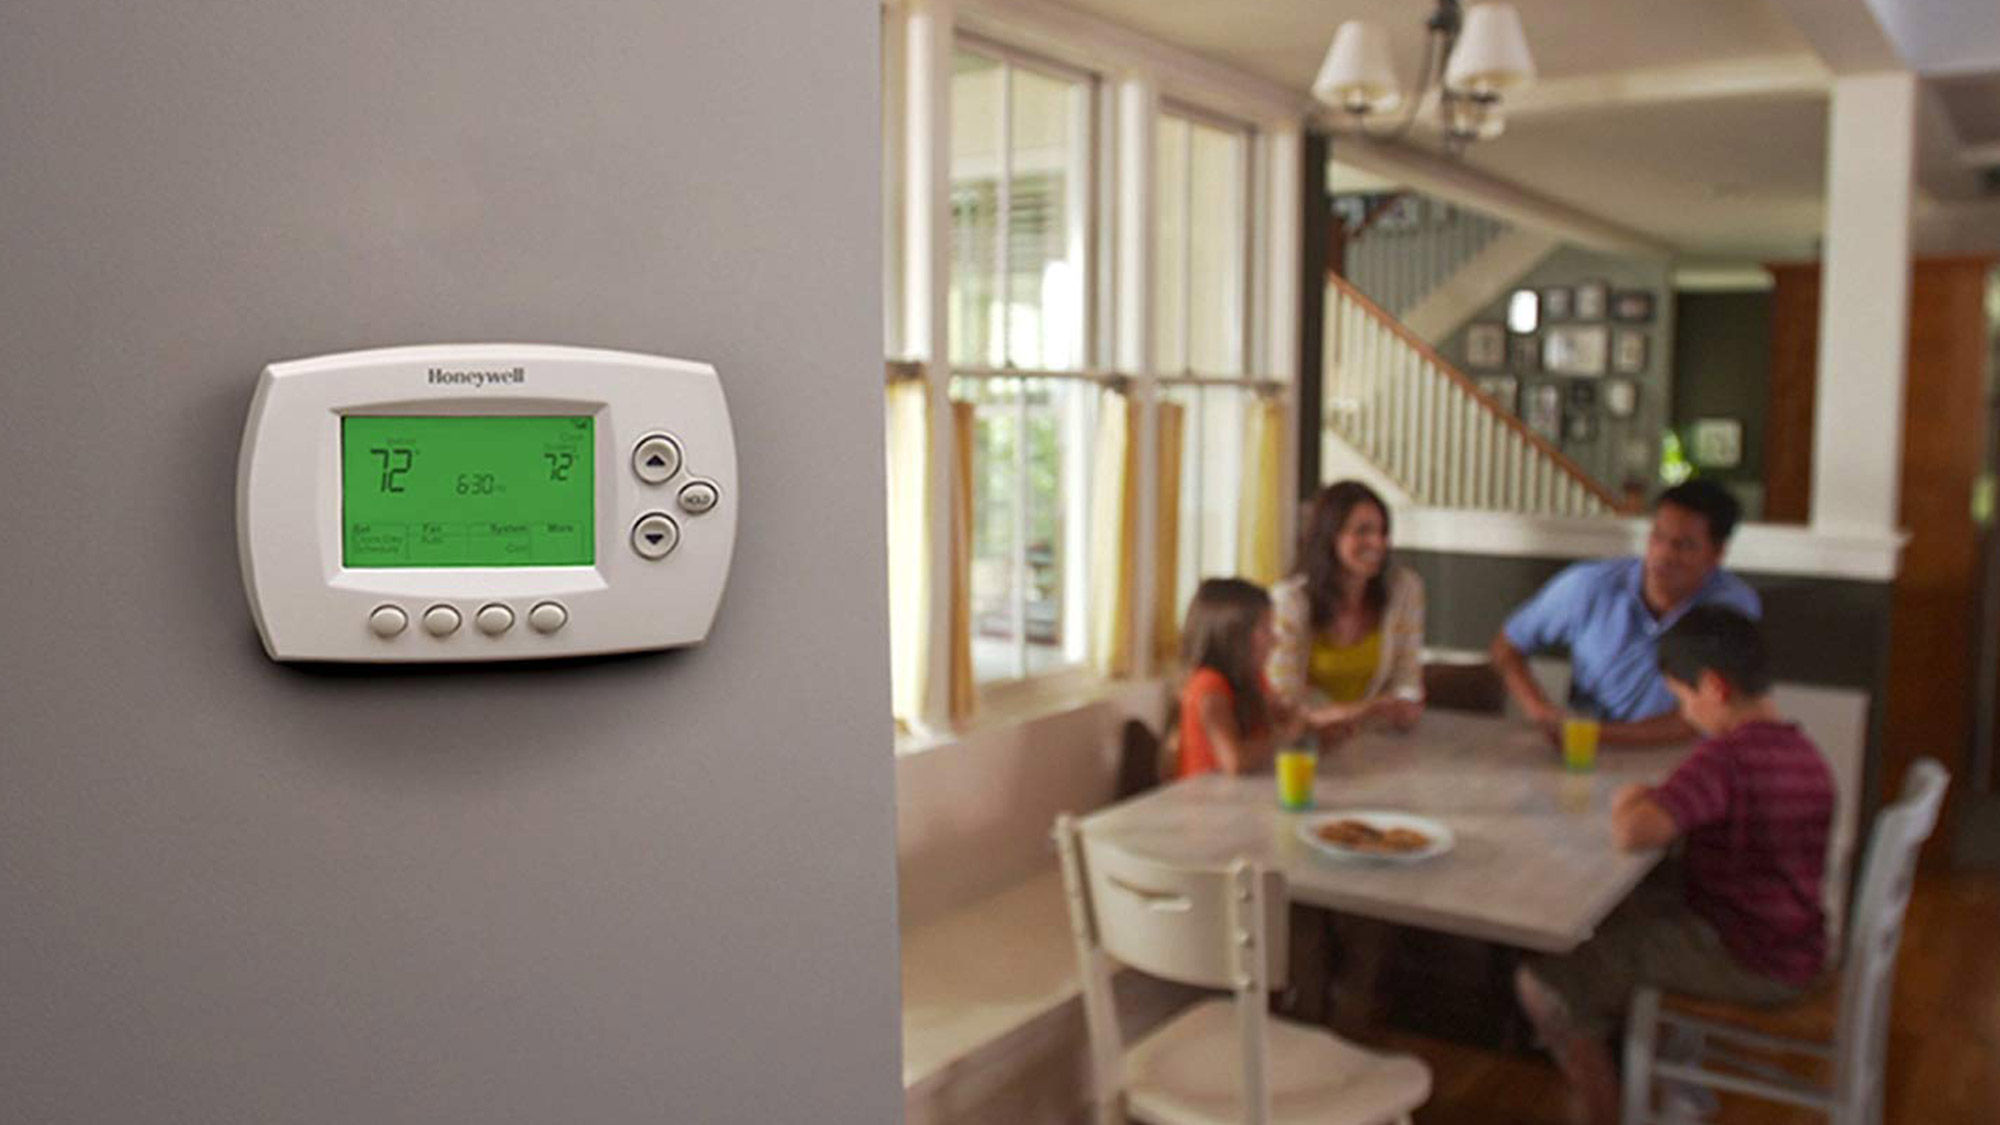 Best cheap smart home devices: Honeywell RTH6580WF